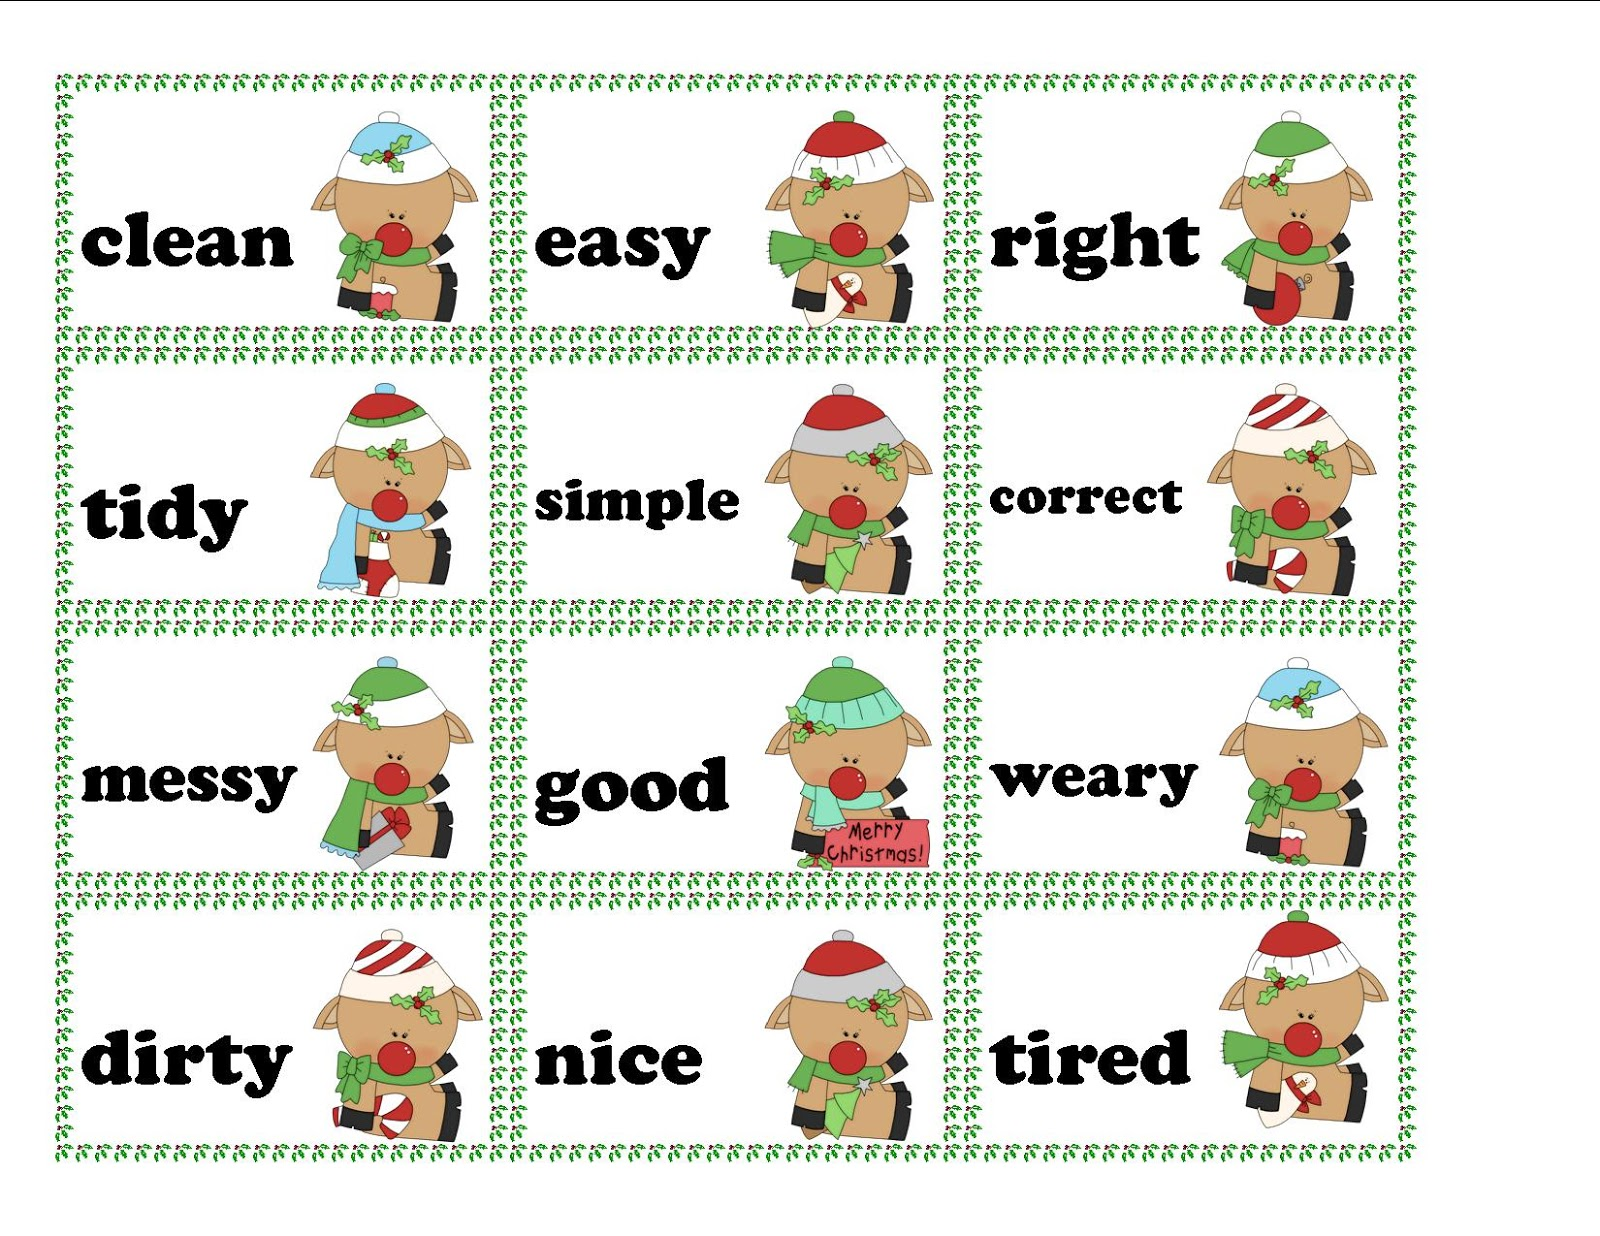 Antonyms examples clipart clipart royalty free Synonyms and antonyms clipart - ClipartFest clipart royalty free